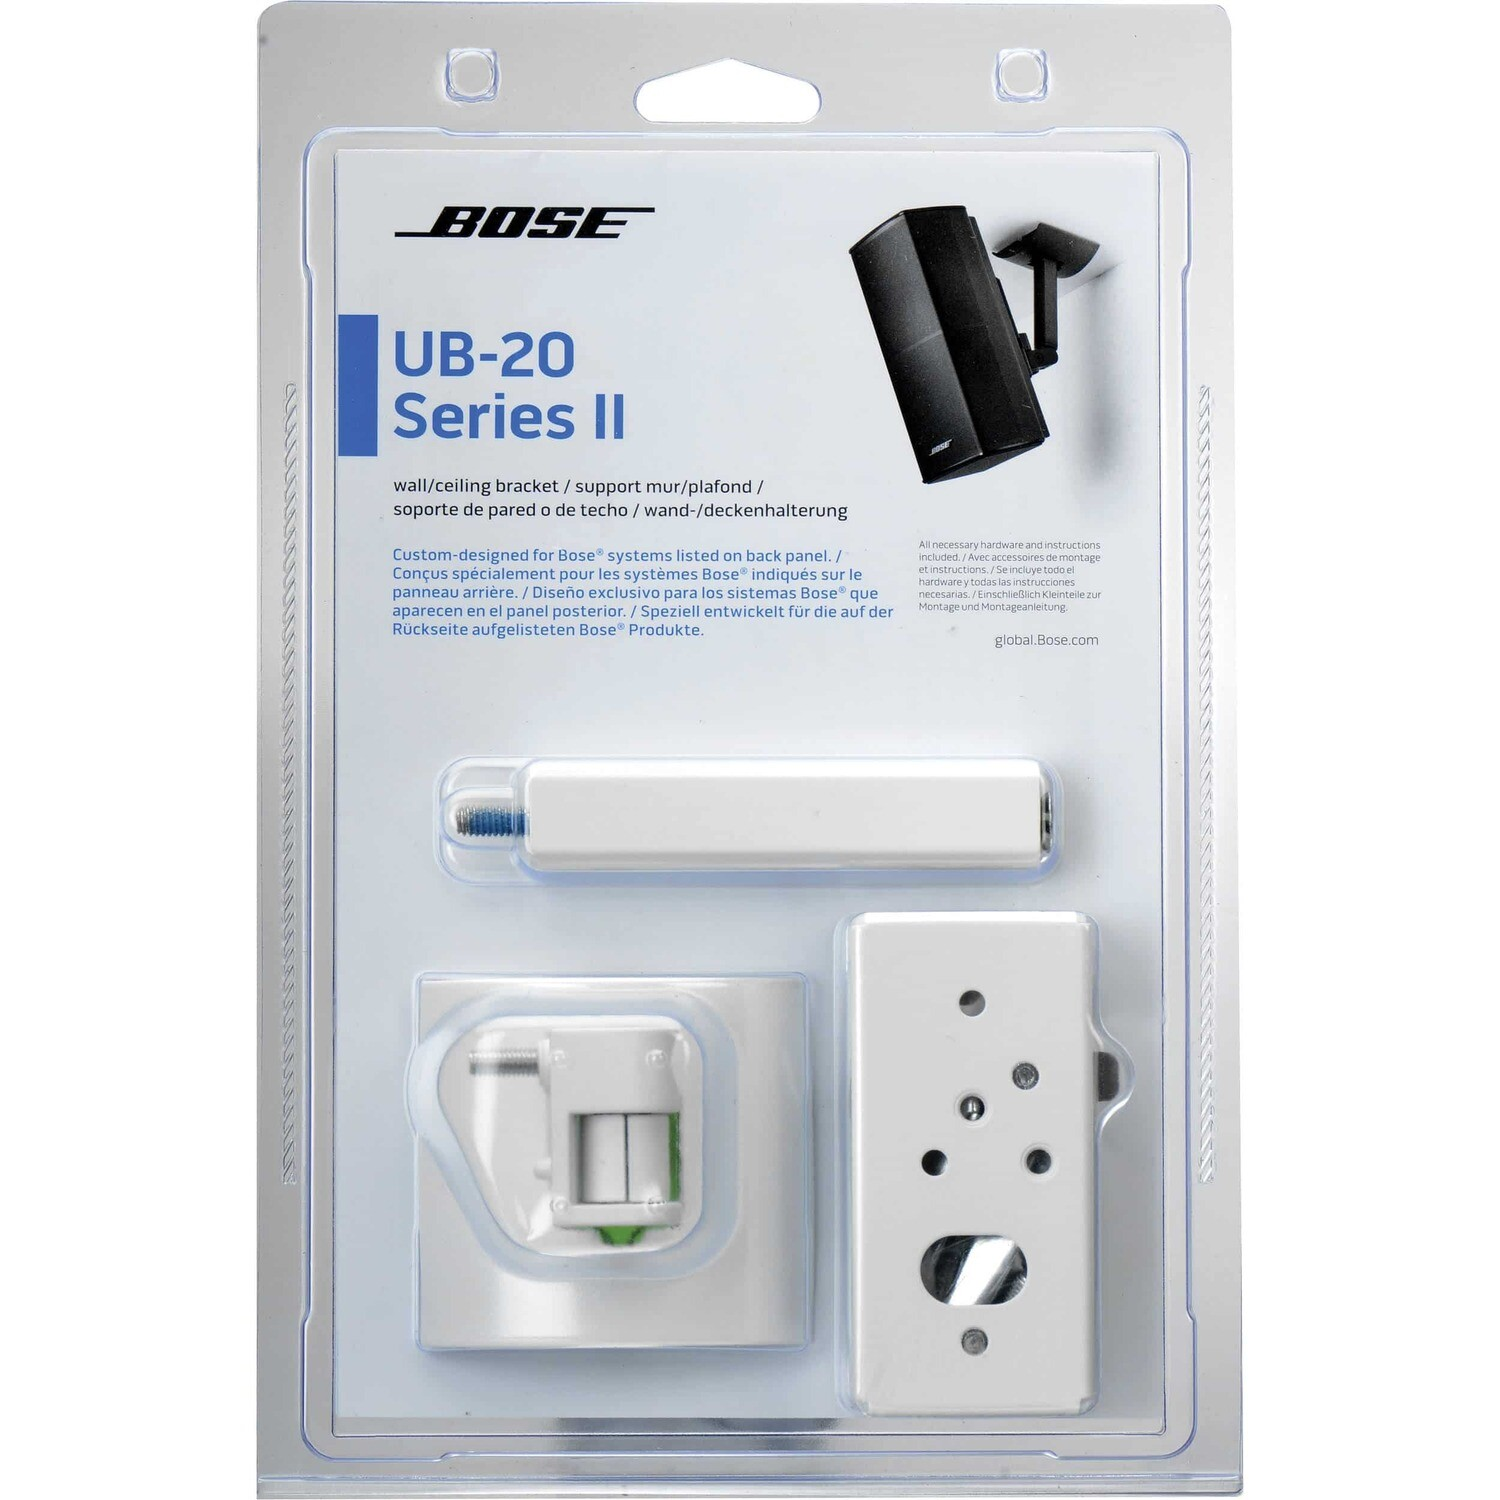 BOSE® Product: UB-20 Series II Wall/Ceiling Bracket - White